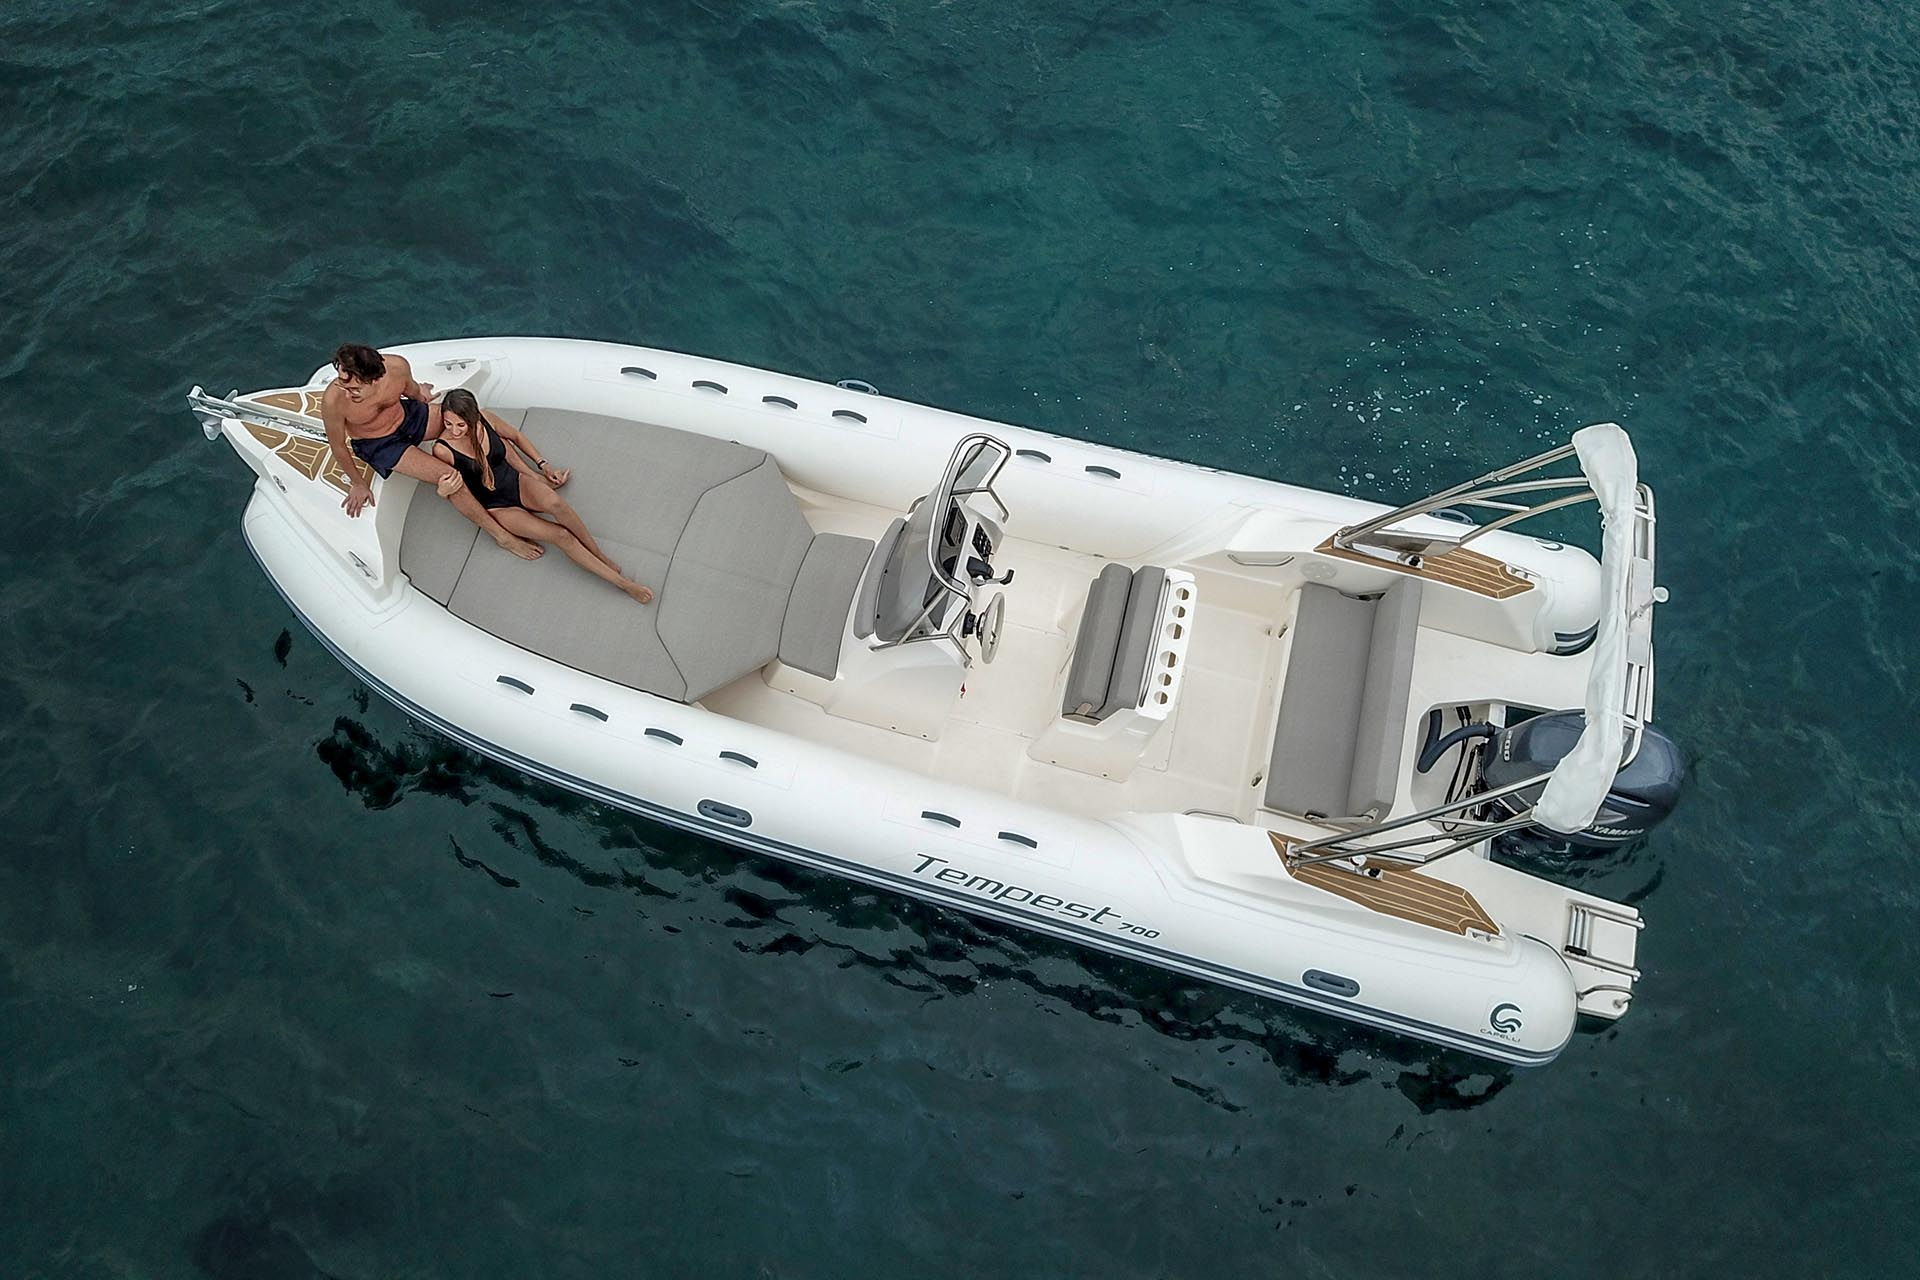 Capelli Tempest 700 on the water